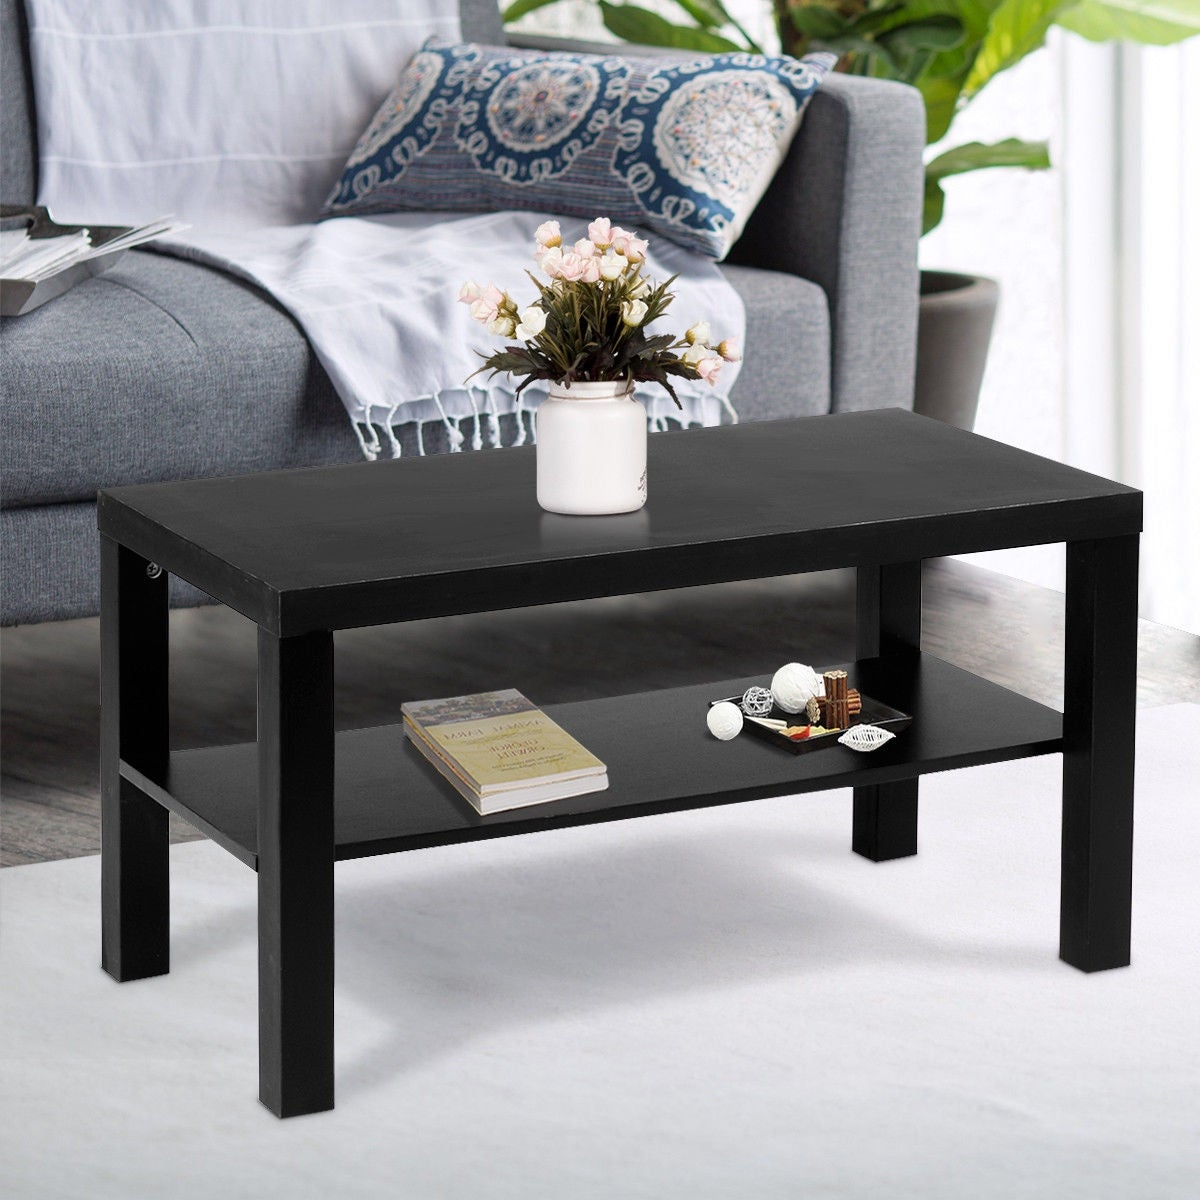 Costway coffee end table rectangle modern living room furniture w storage shelf black